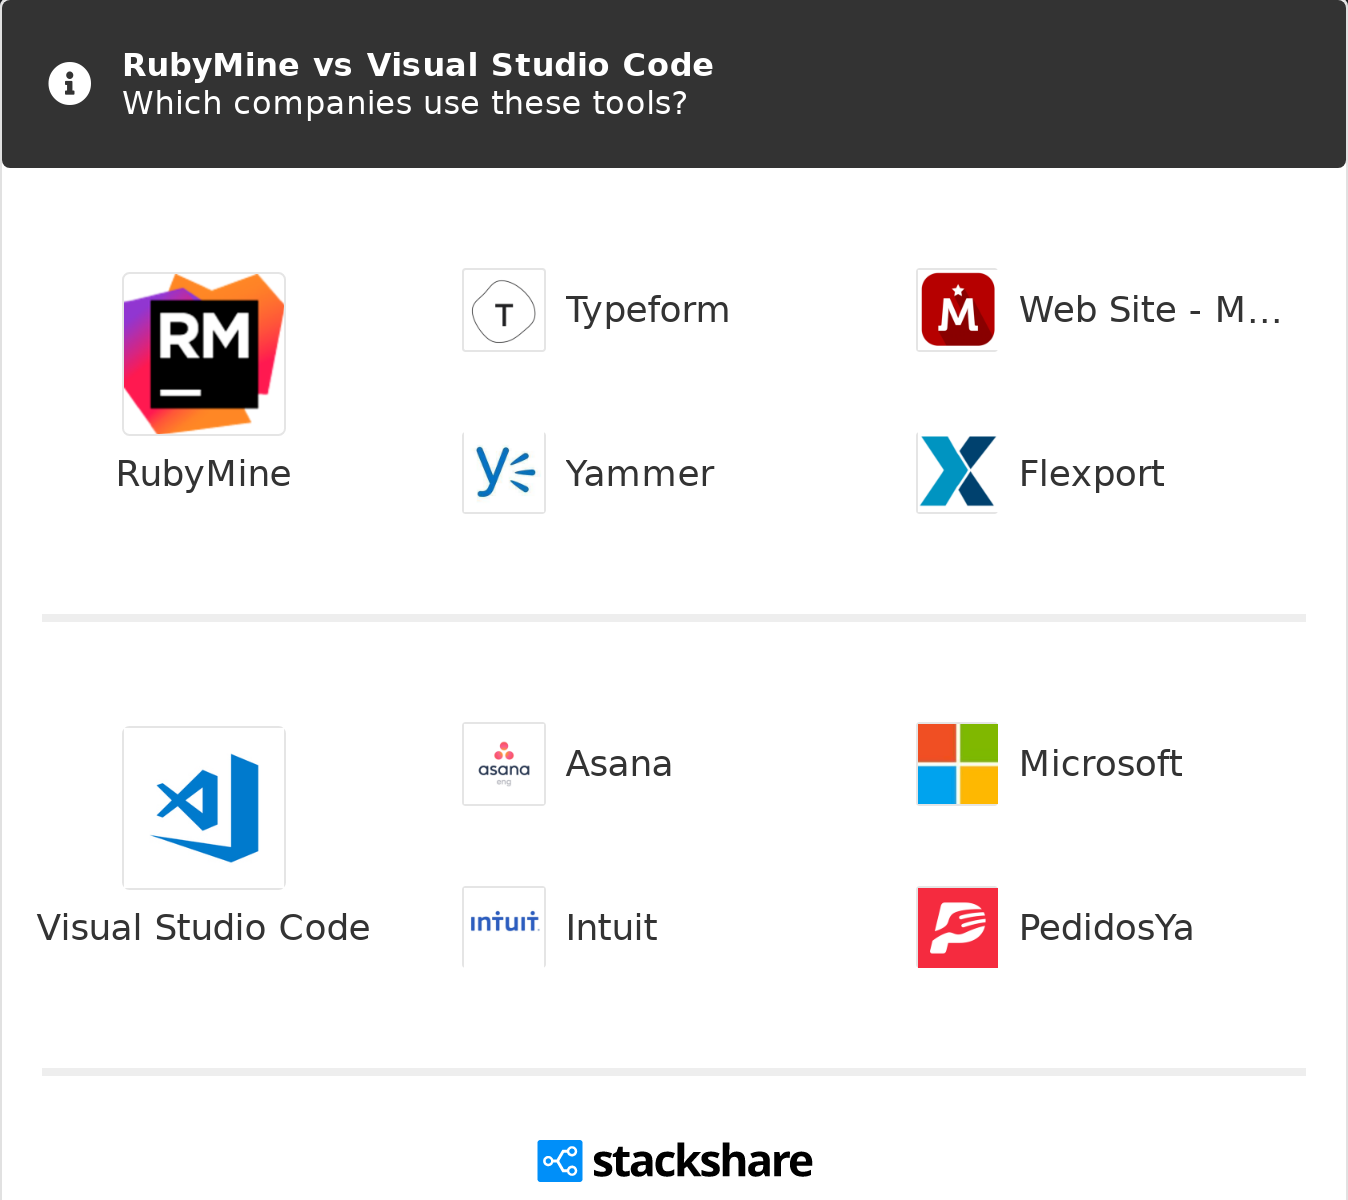 RubyMine vs Visual Studio Code | What are the differences?